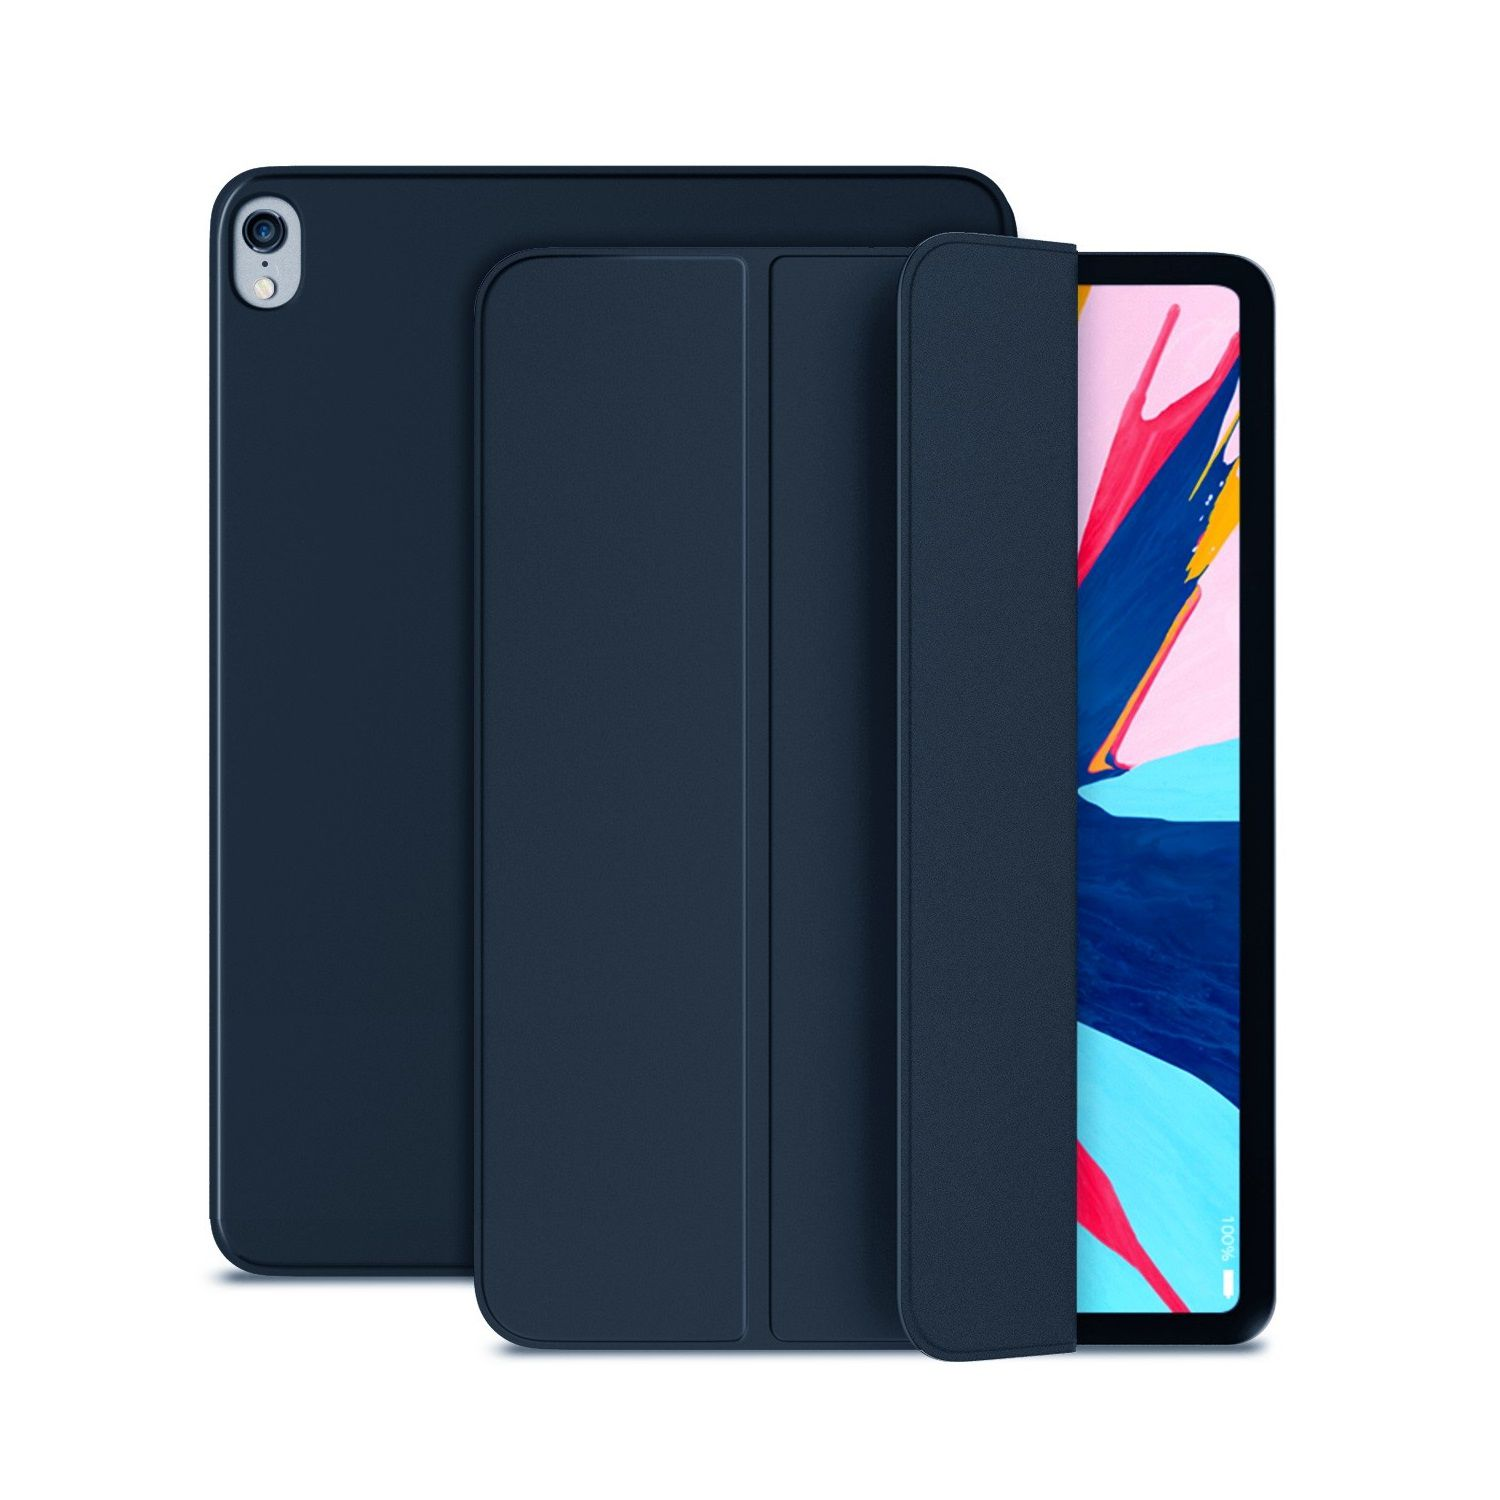 Capa Ipad Air 3 Tela 10.5 Apple 2019 Smart Case Magnética Azul A2152 A2123 A2154